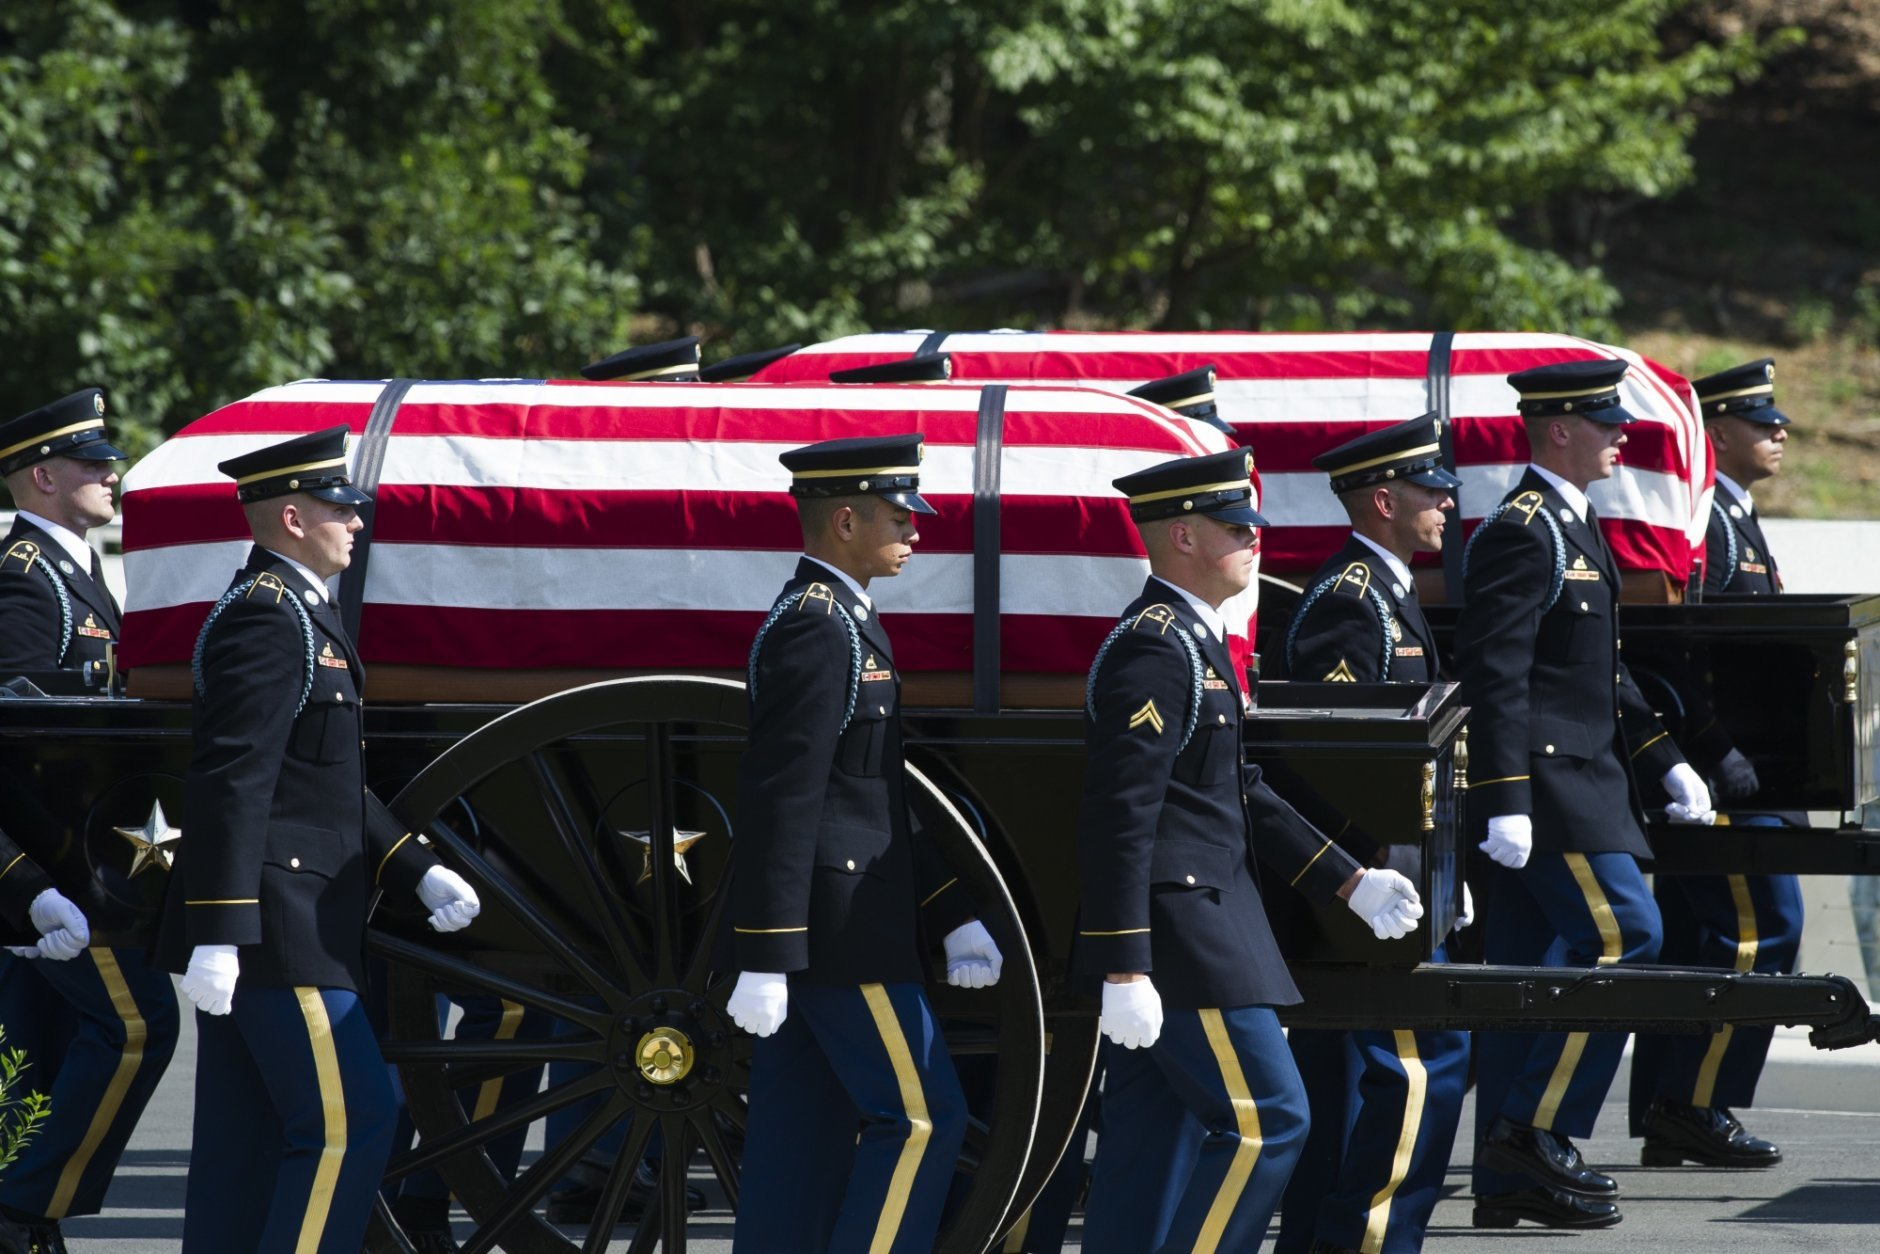 In this Sept. 6, 2018 photo, the 3rd Infantry Regiment, also known as the Old Guard, Caisson Platoon carry the remains of two unknown Civil War Union soldiers to their grave at Arlington National Cemetery in Arlington, Va.  The U.S. Army is being criticized for reburying the remains of two recently discovered Civil War soldiers without conducting DNA testing. The soldiers were found at Manassas National Battlefield, among severed limbs in what researchers believe was a surgeon's pit. Army officials said DNA testing was unjustified and reburied them as unknown soldiers at Arlington National Cemetery.  (AP Photo/Cliff Owen)